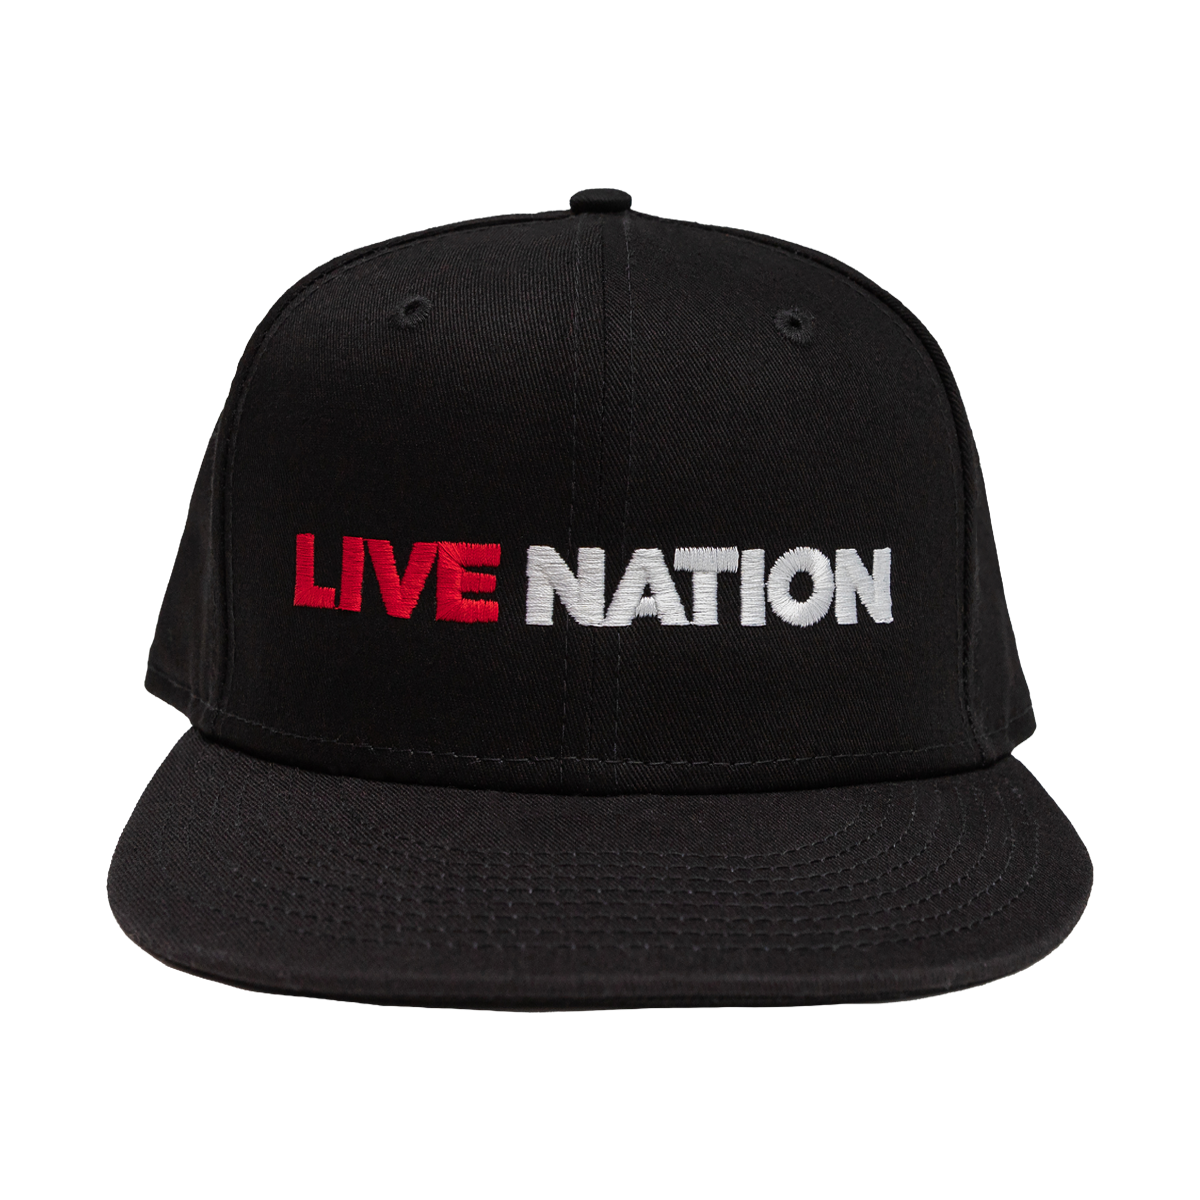 EMBROIDERED LOGO CAP-Live Nation